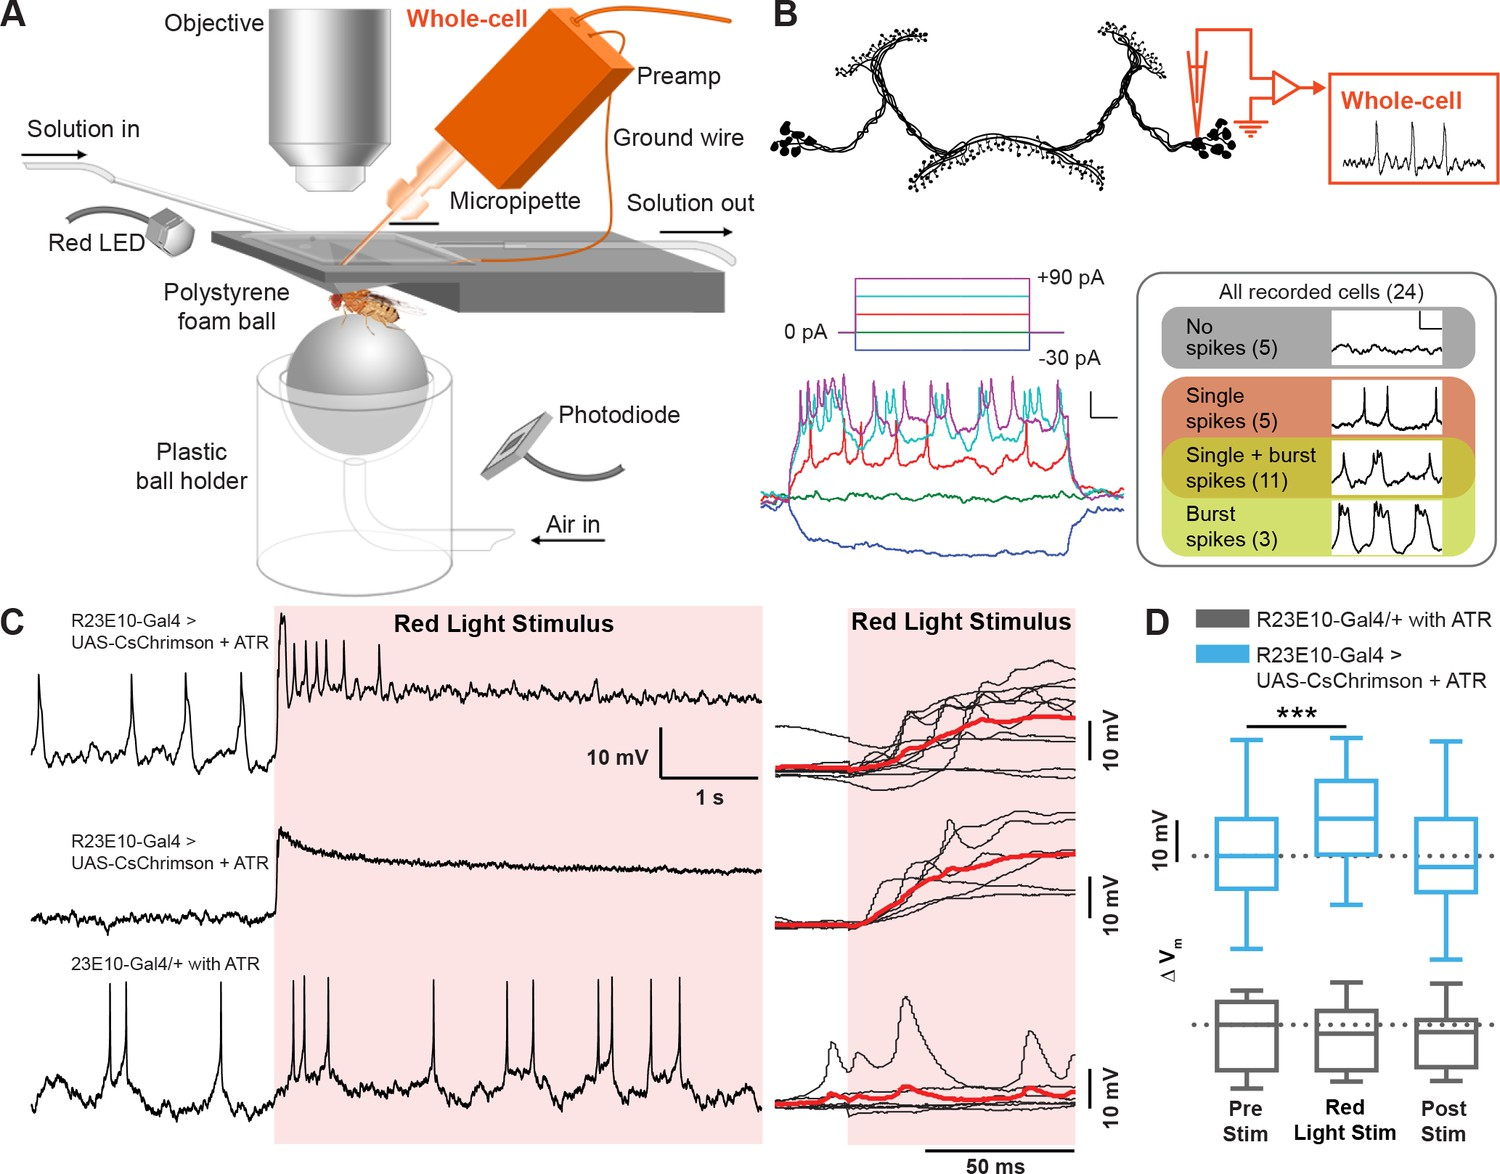 Acute Control Of The Sleep Switch In Drosophila Reveals A Role For Snap Circuits Xp With Your Computer Electrophysiological Effects Acutely Activating R23e10 Neurons